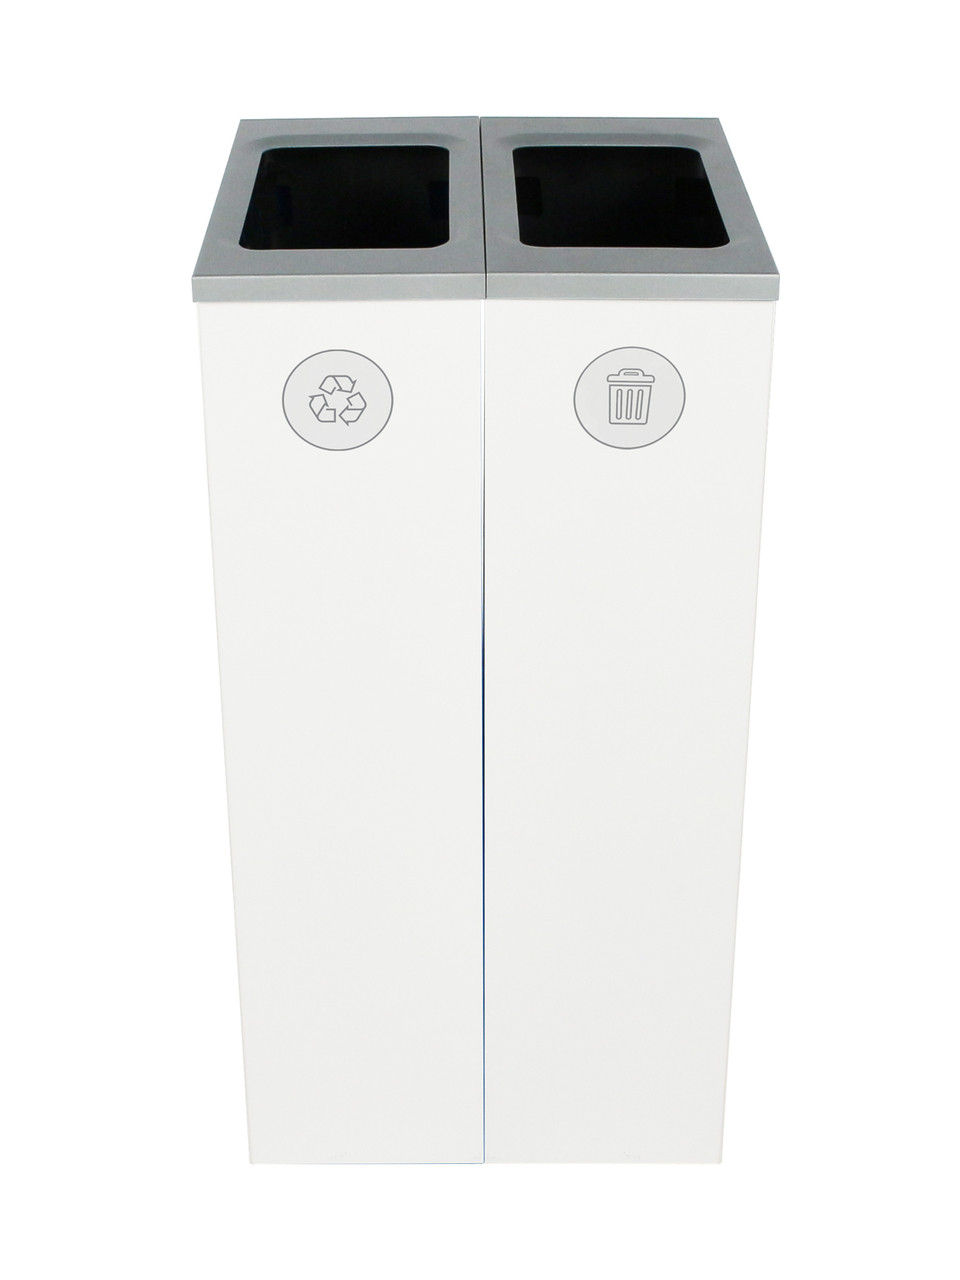 20 Gallon Spectrum Slim Dual Trash Can & Recycle Bin White 8107099-44